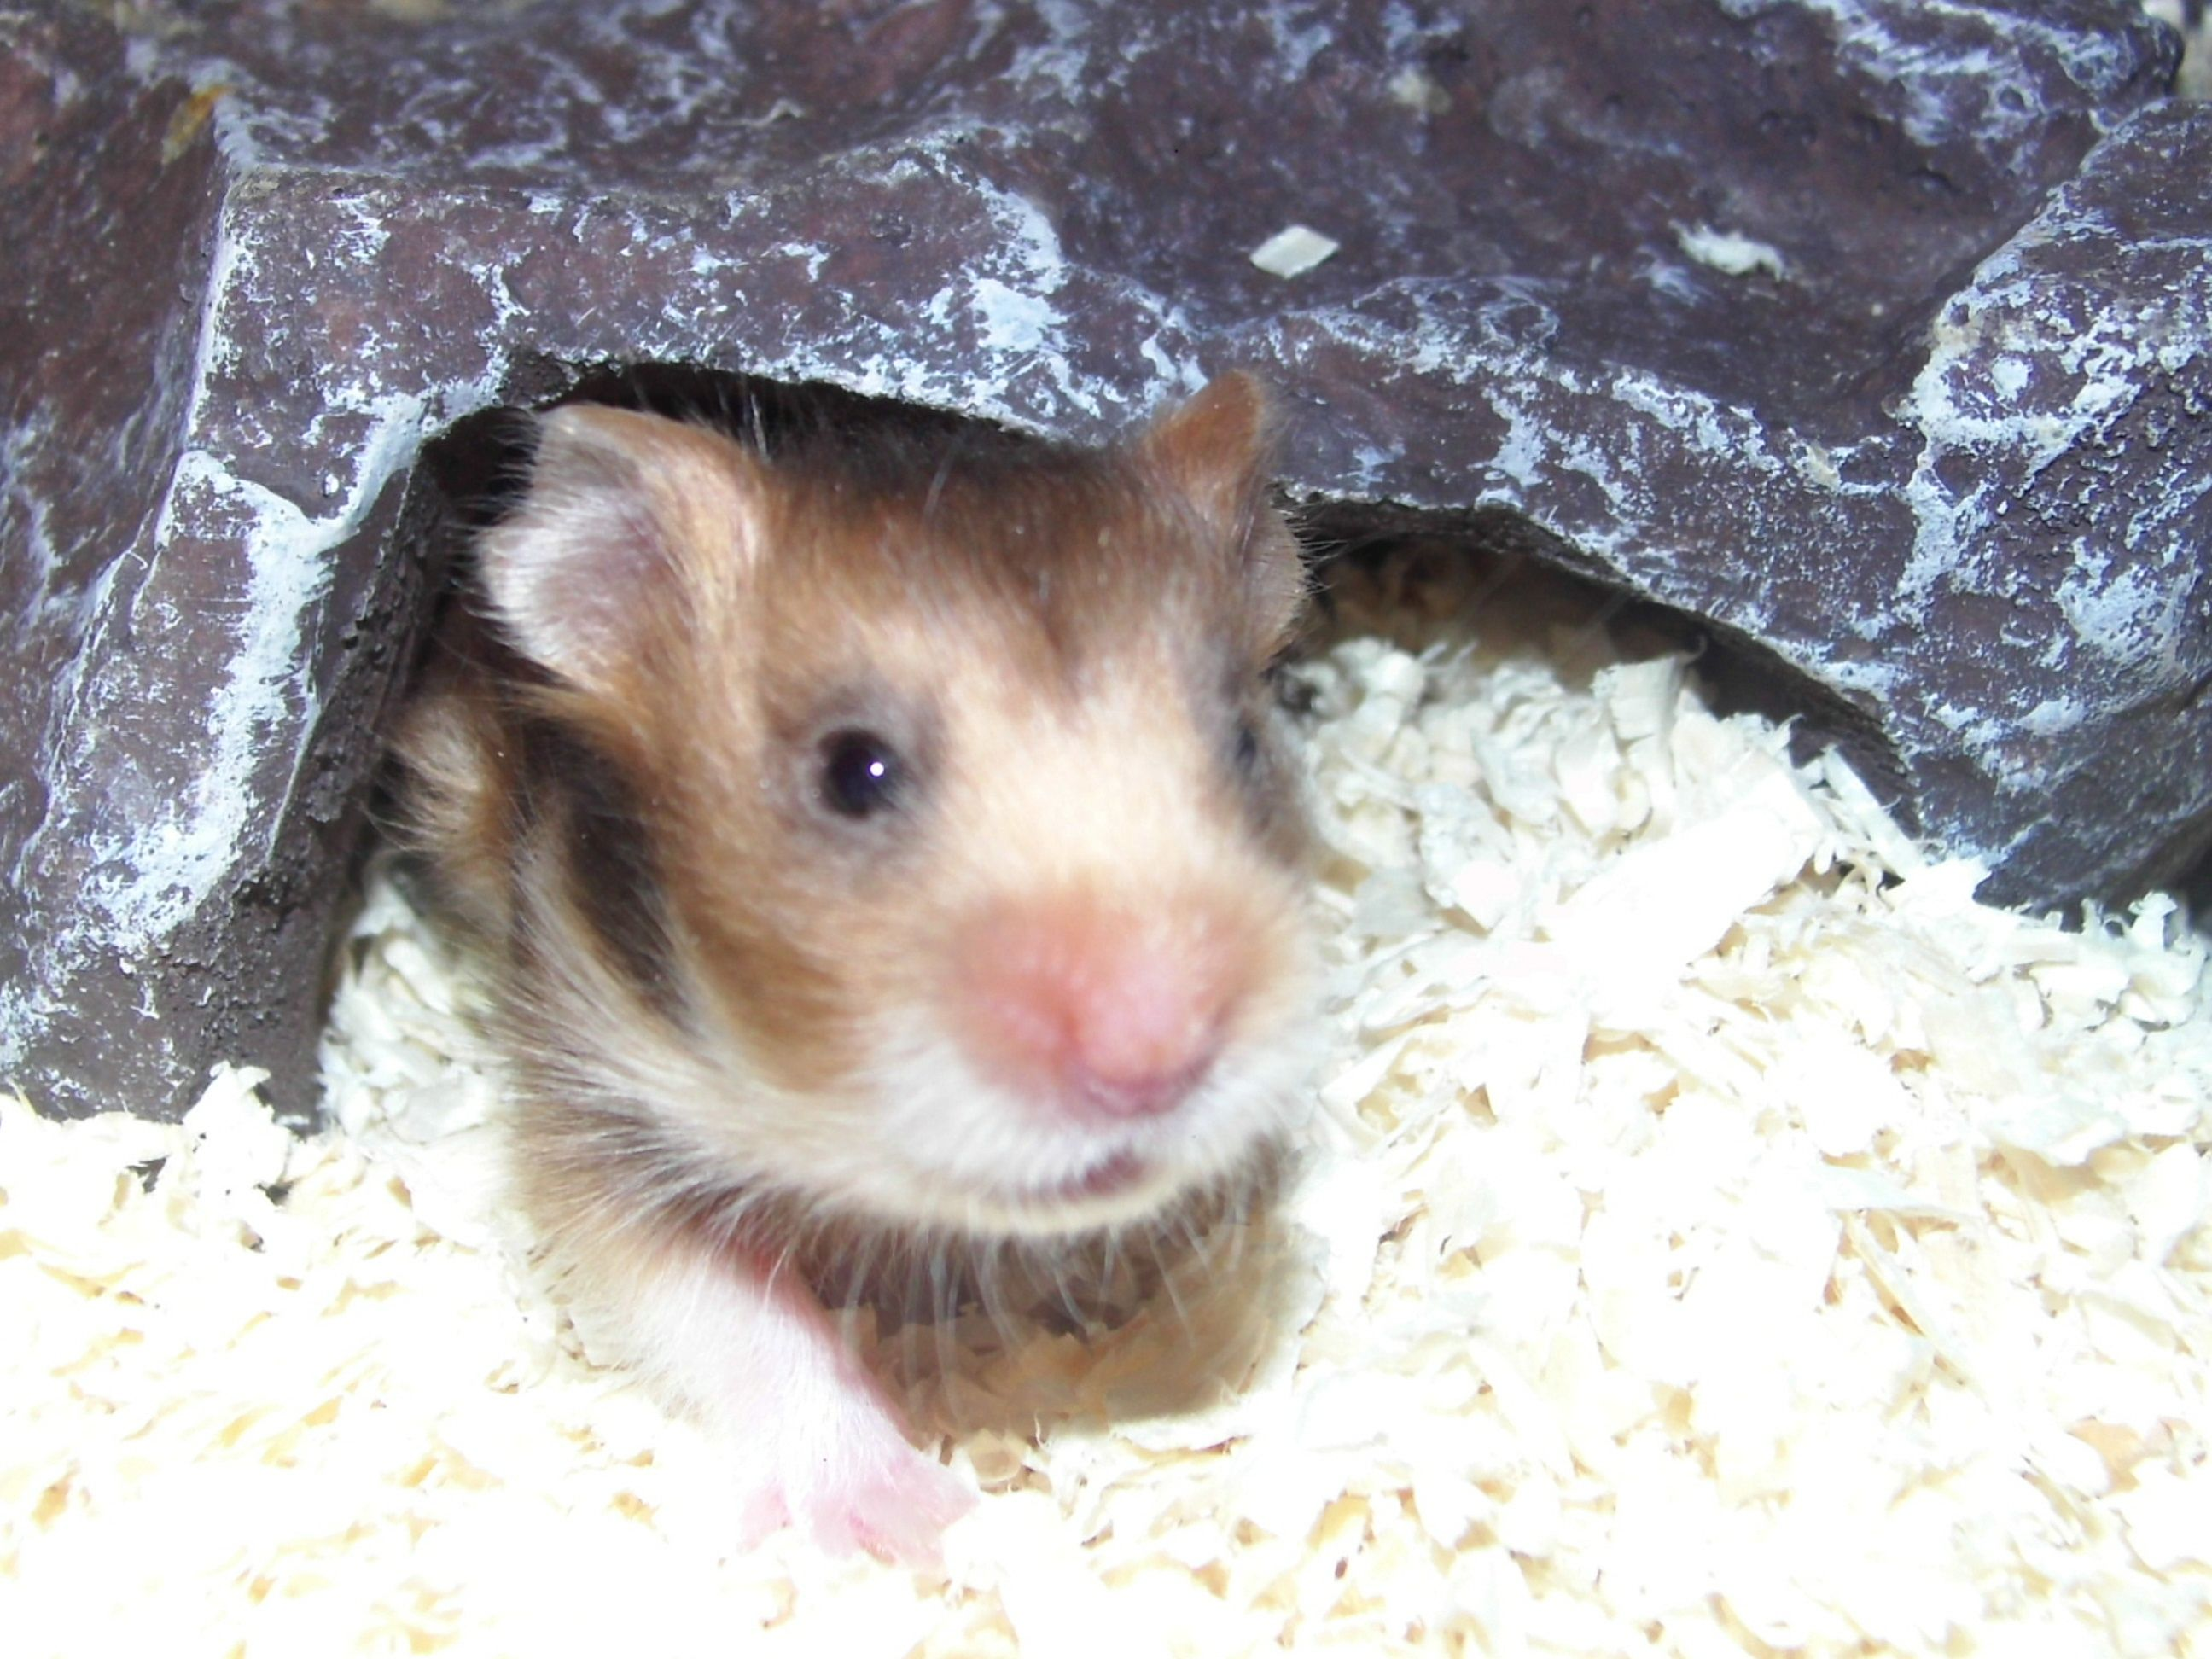 17 Day Old Baby Hamster Rust Satin Long Haired Female At Happy Hamsters Hamster Baby Hamster Baby Animals